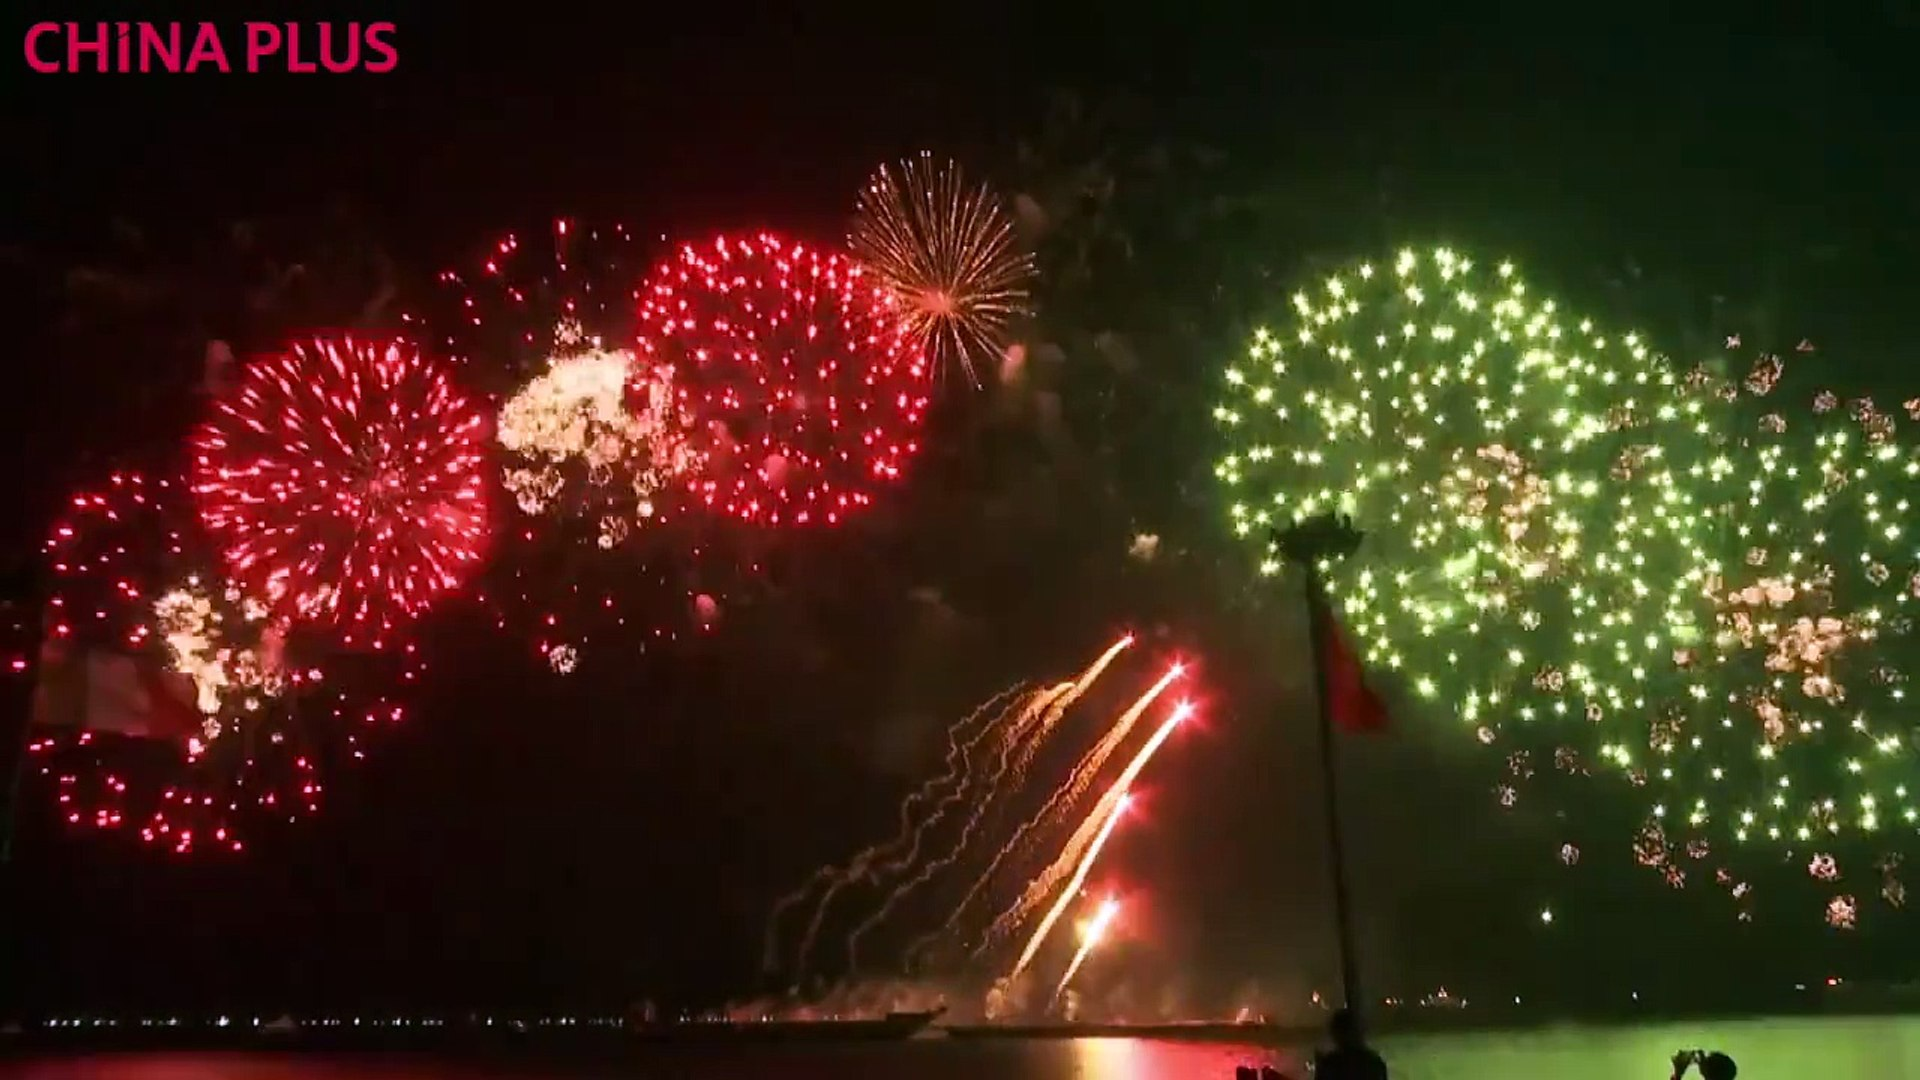 Thousands watched as fireworks lit up the night sky on the final weekend of the ninth Philippine Int